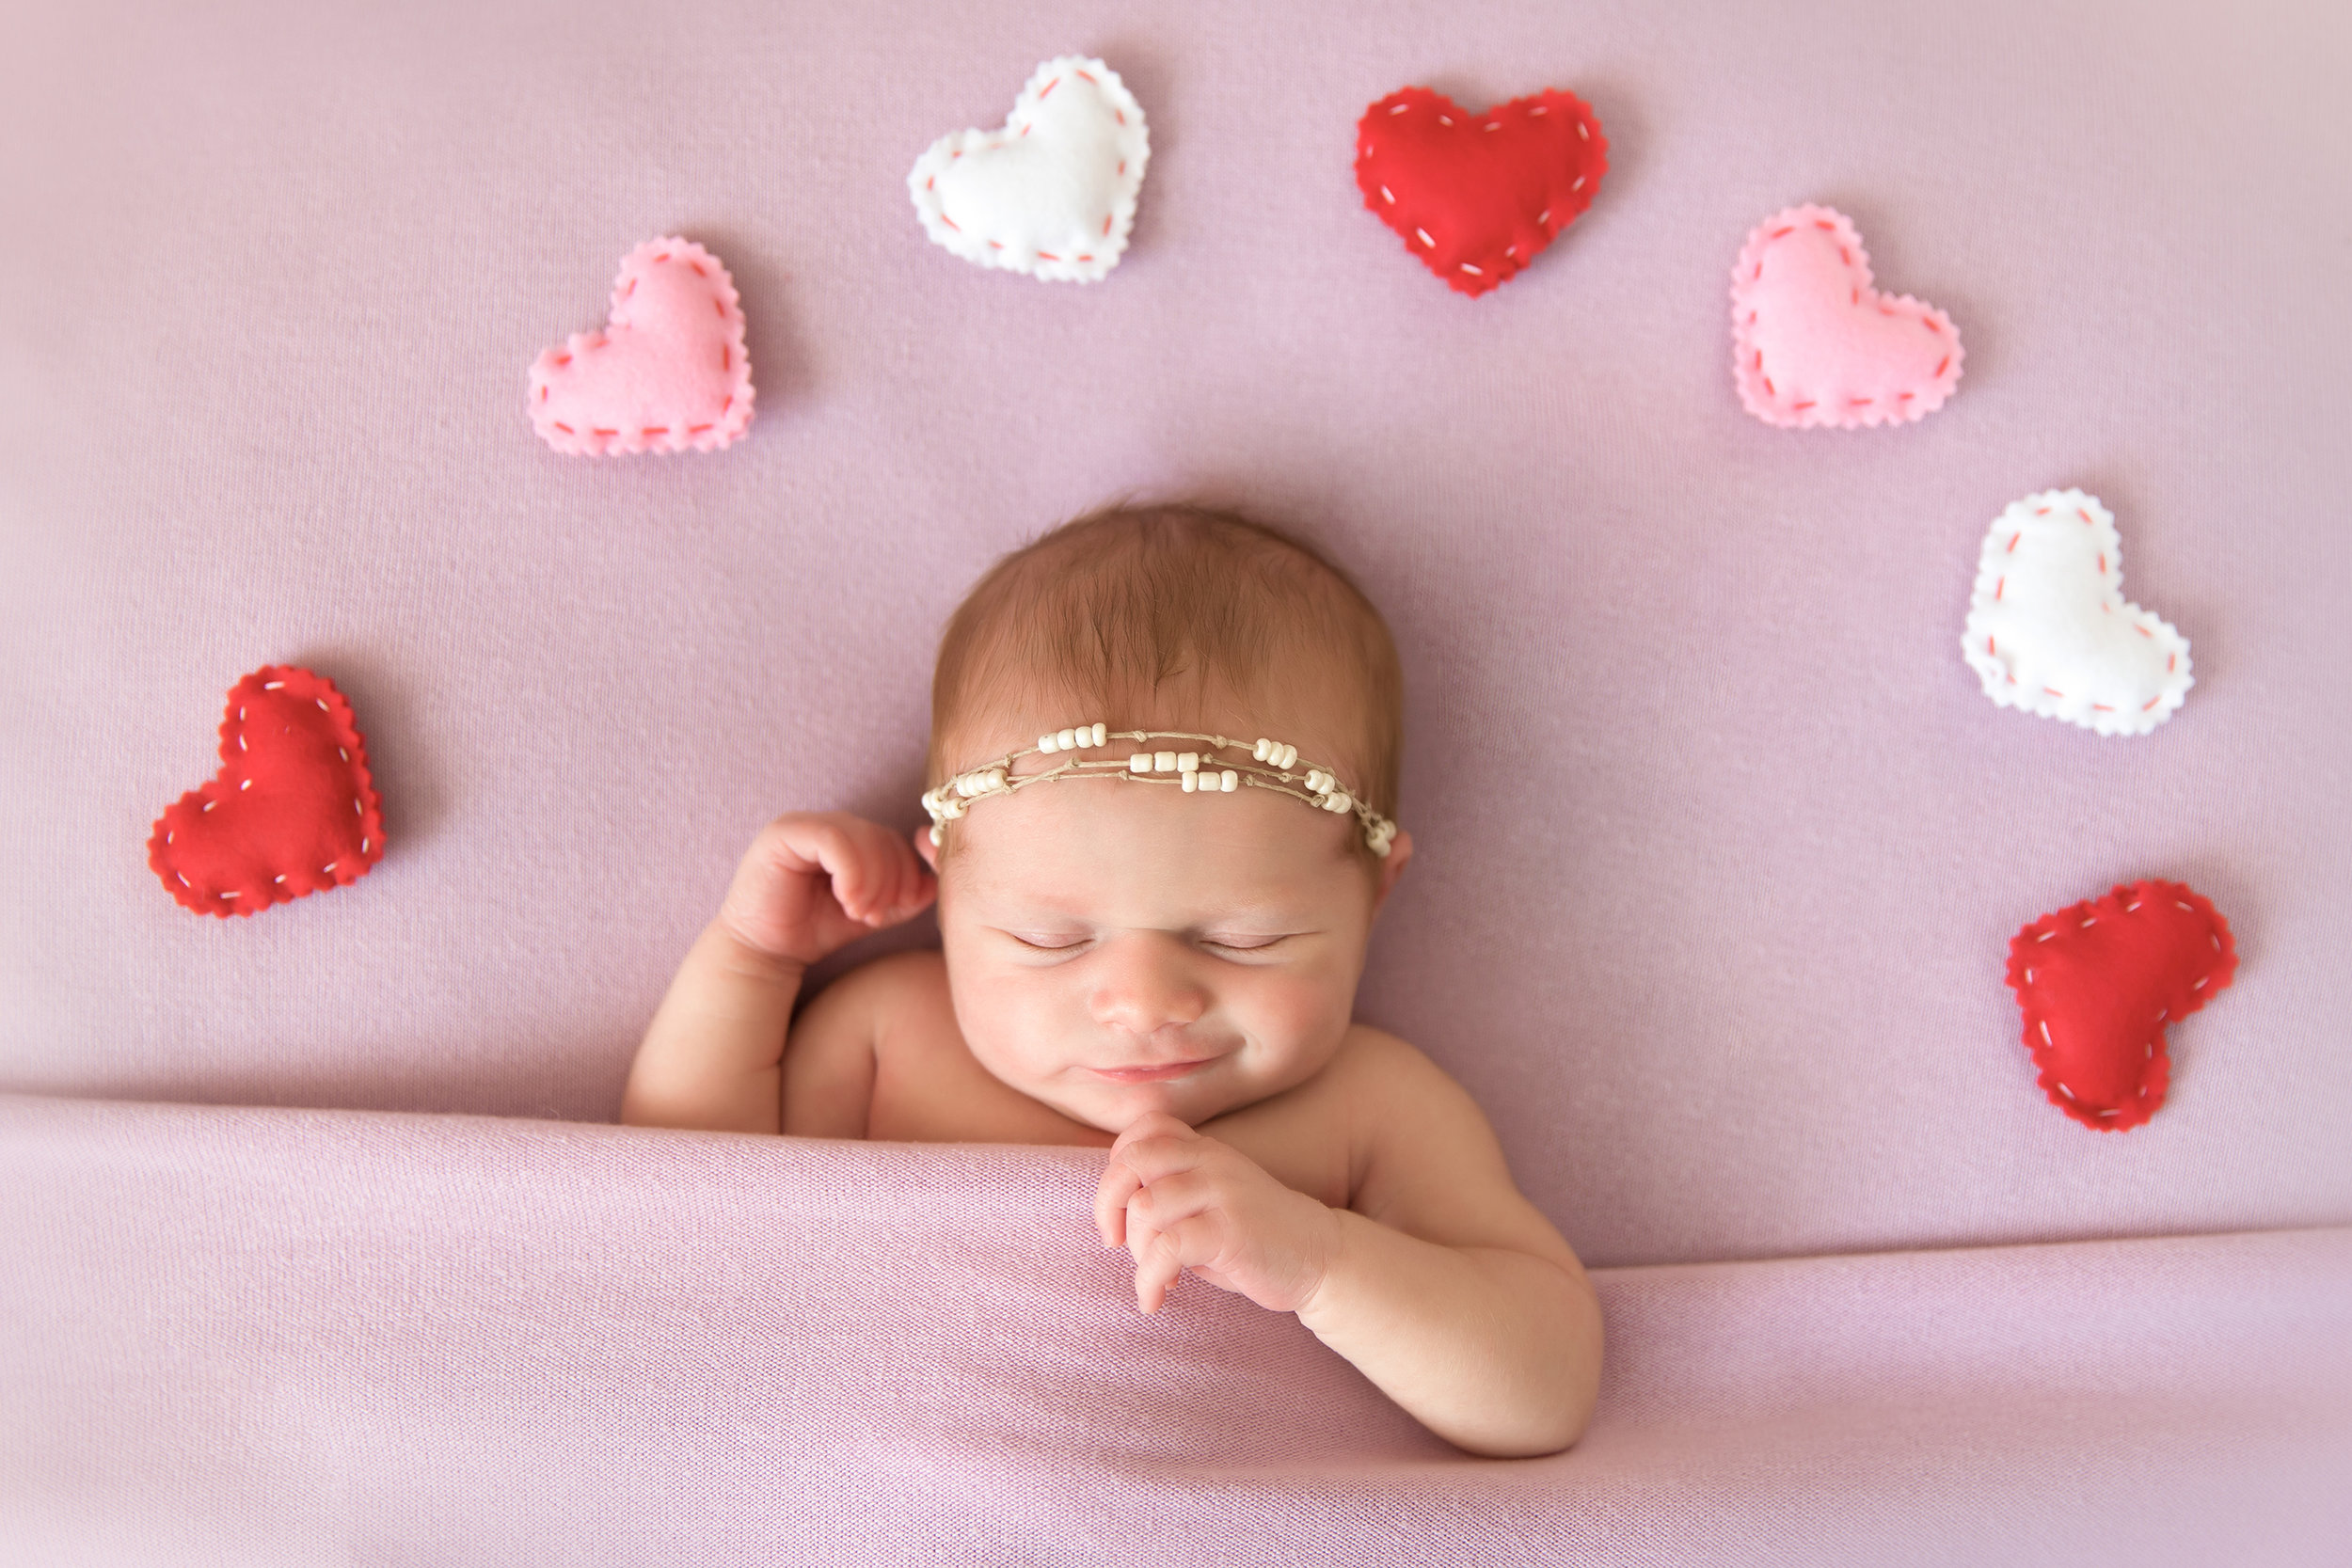 Newborn Photoshoot ideas. Newborn baby girl on a beanbag smiling and surrounded by little hearts. Calgary Newborn photographer. Milashka Photography